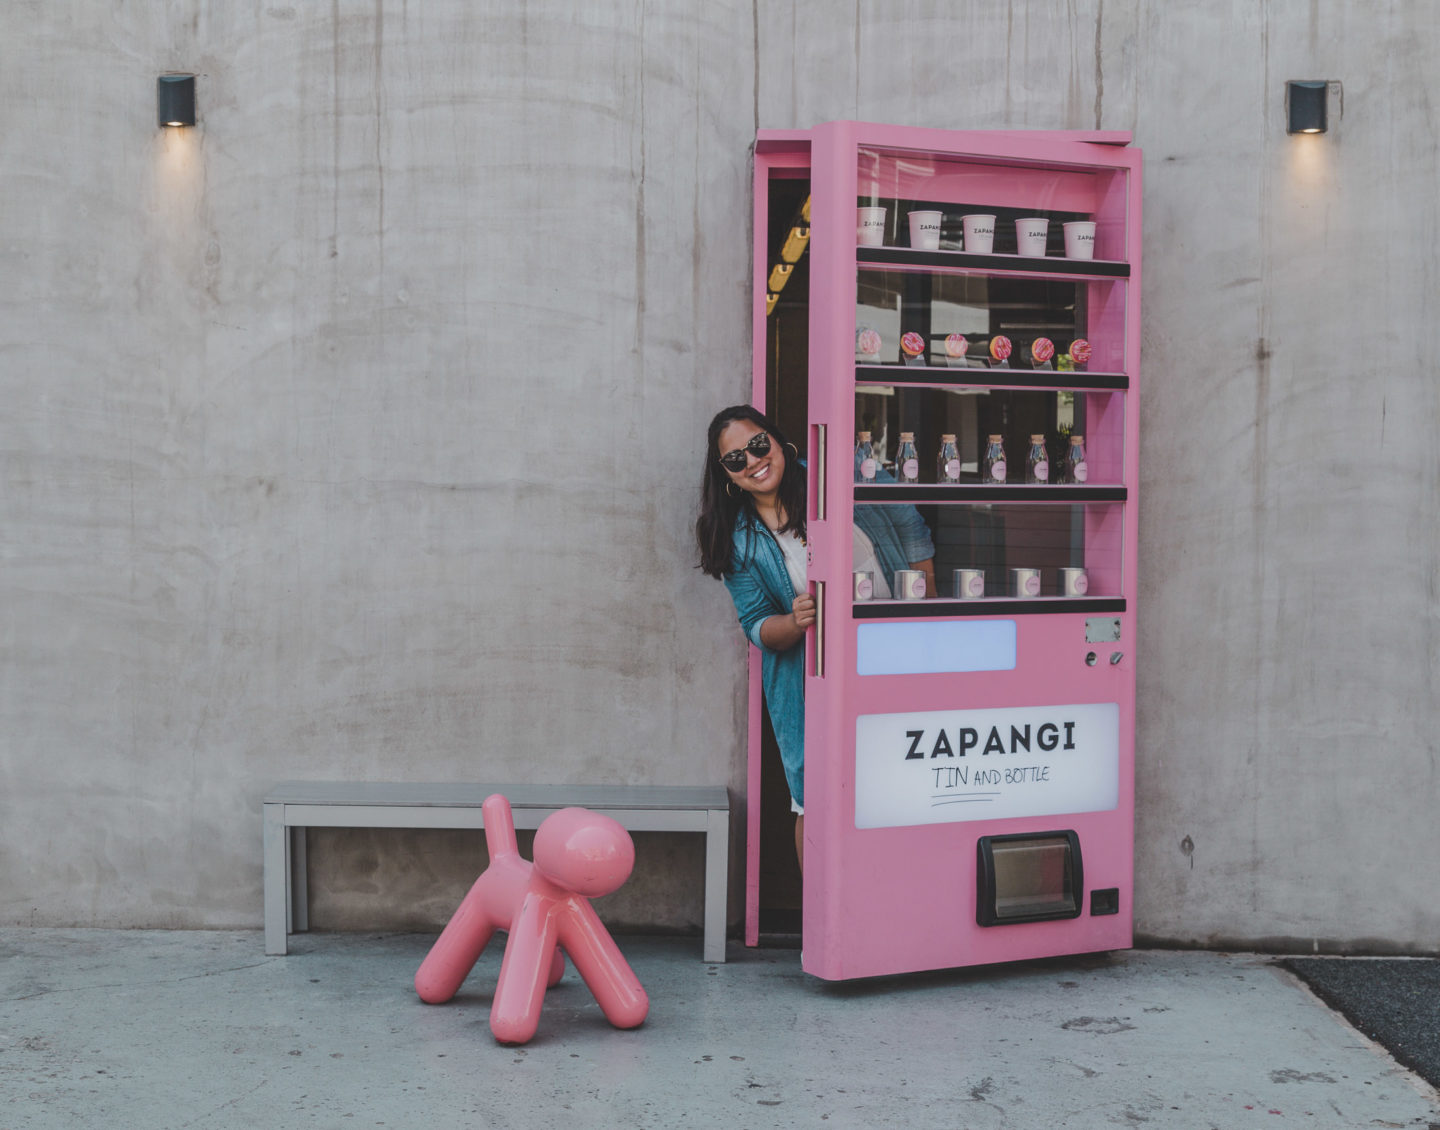 Zapangi Cafe 자판기 The Famous Pink Vending Machine Cafe There She Goes Again